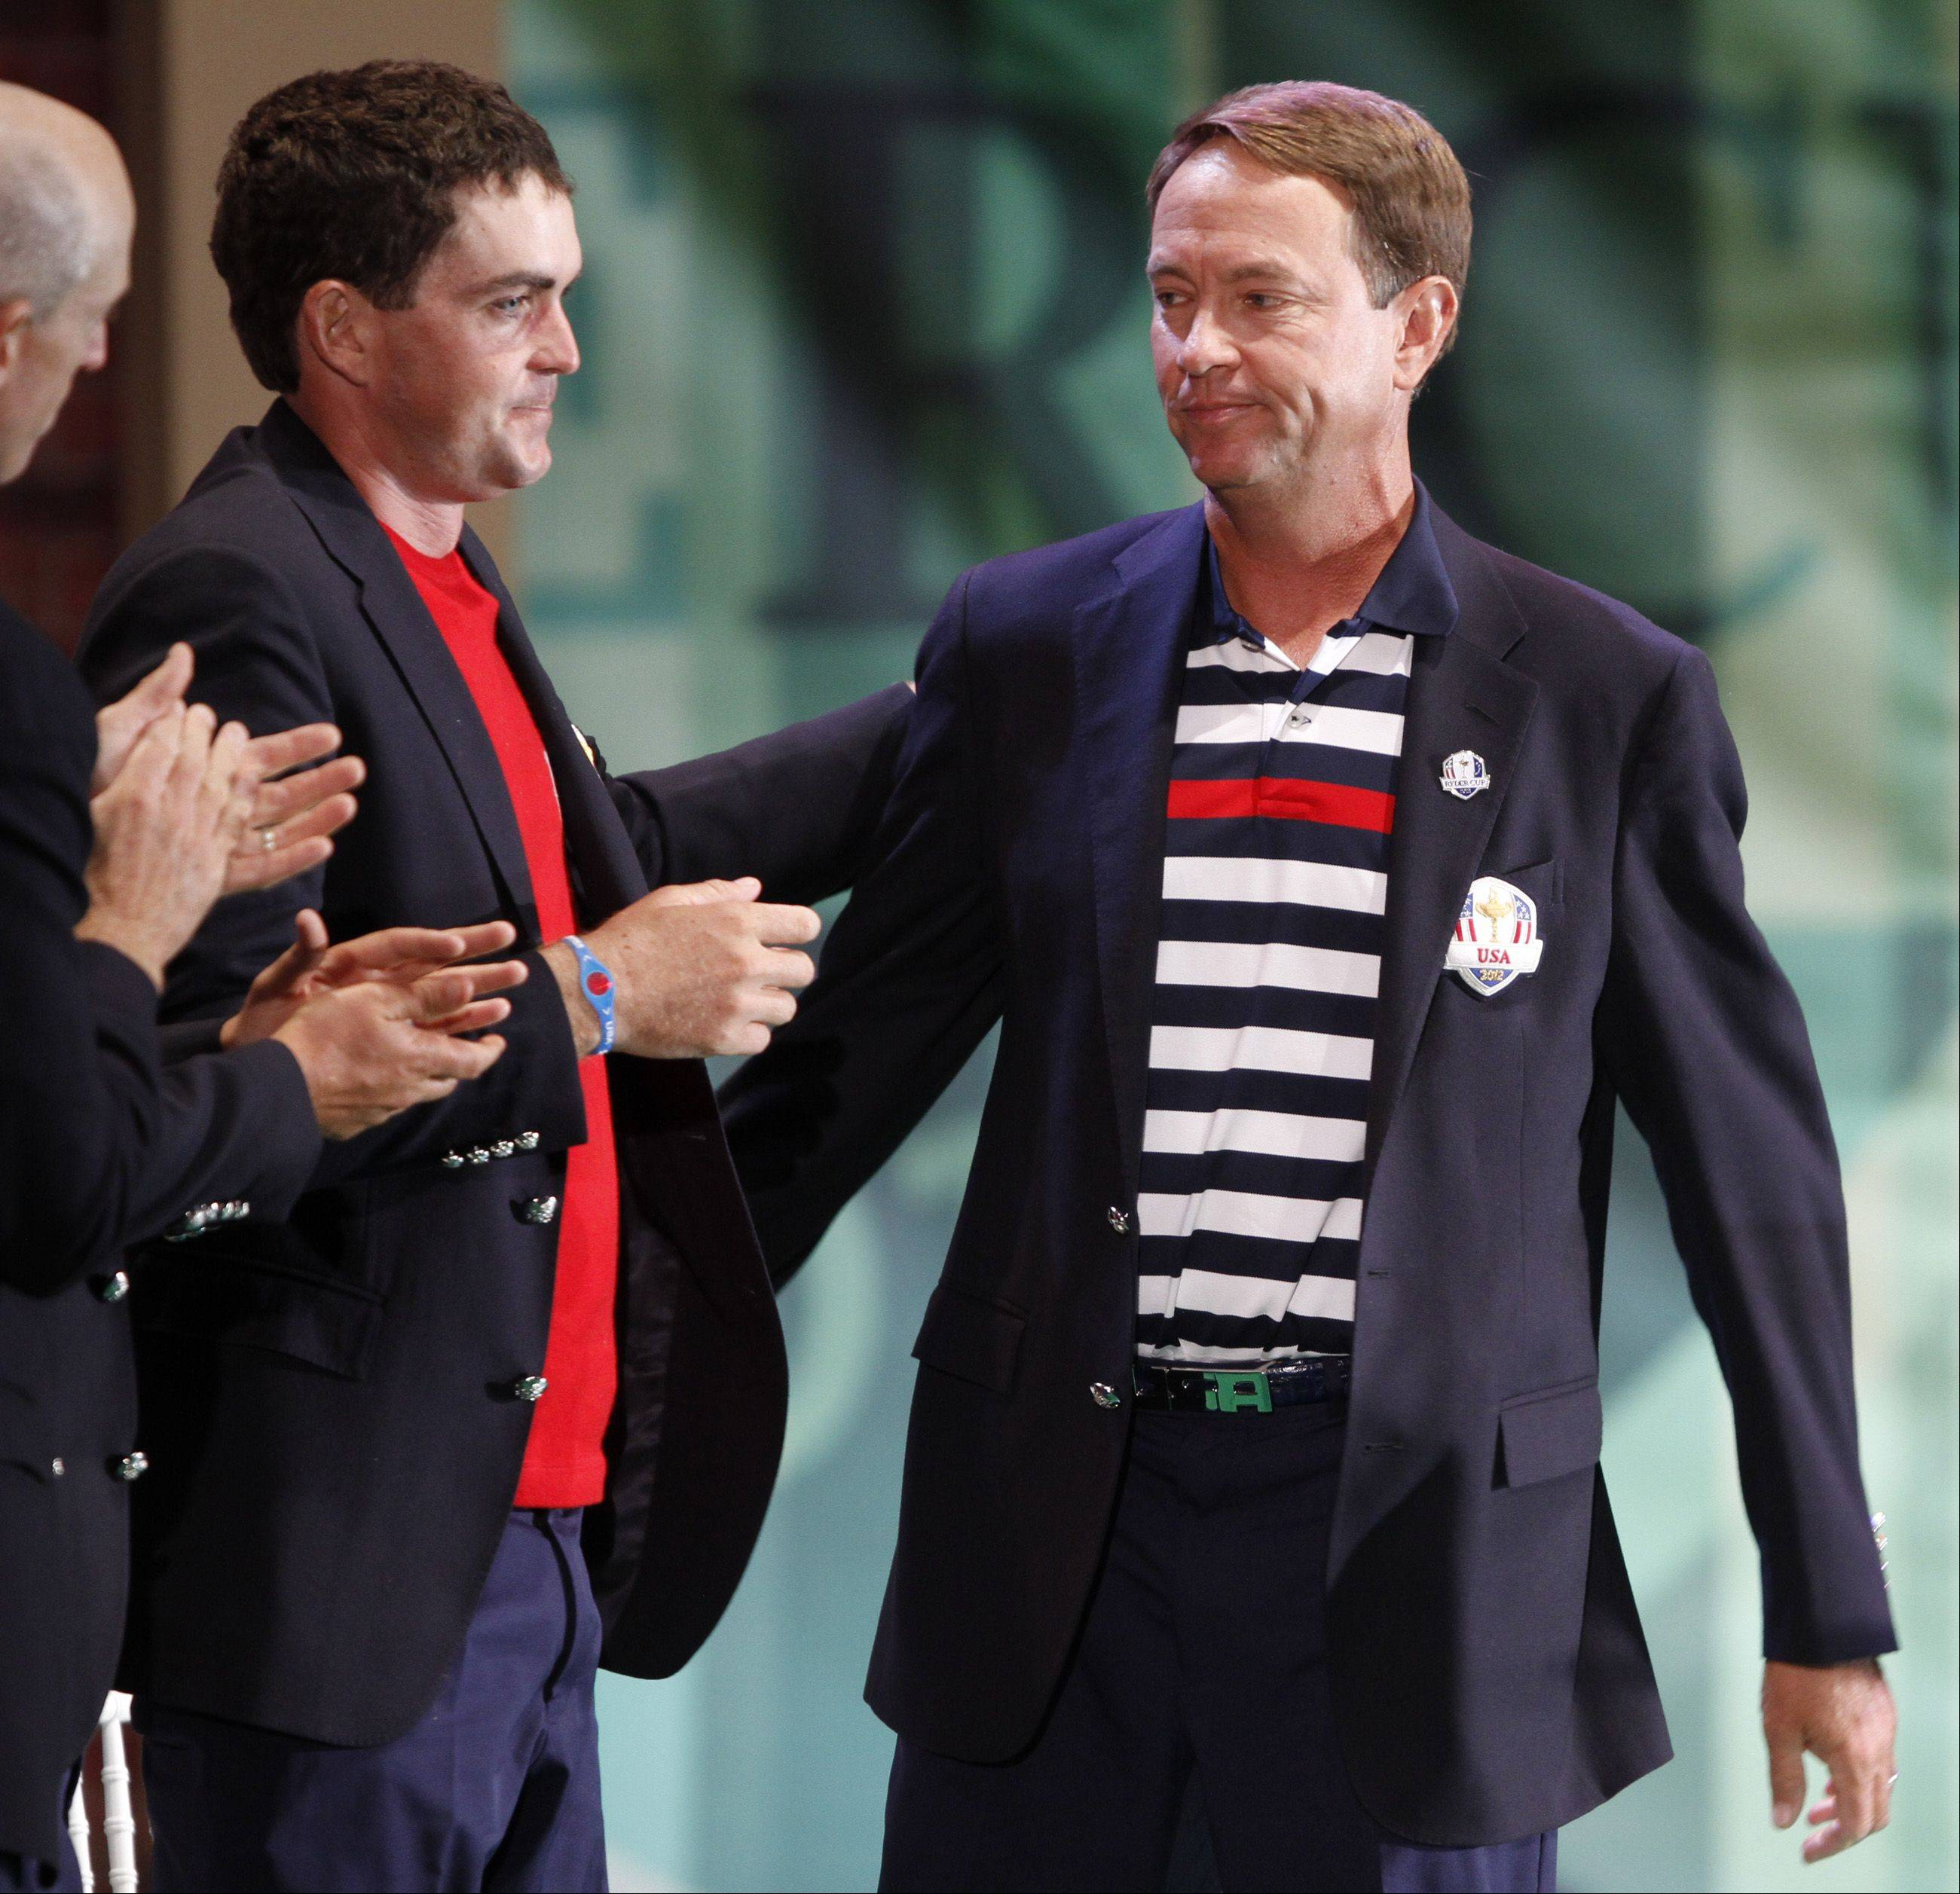 U.S. captain Davis Love III is applauded by his players including Jim Furyk, left, and rookie Keegan Bradley, after Love's remarks Sunday during the closing ceremony of the Ryder Cup.